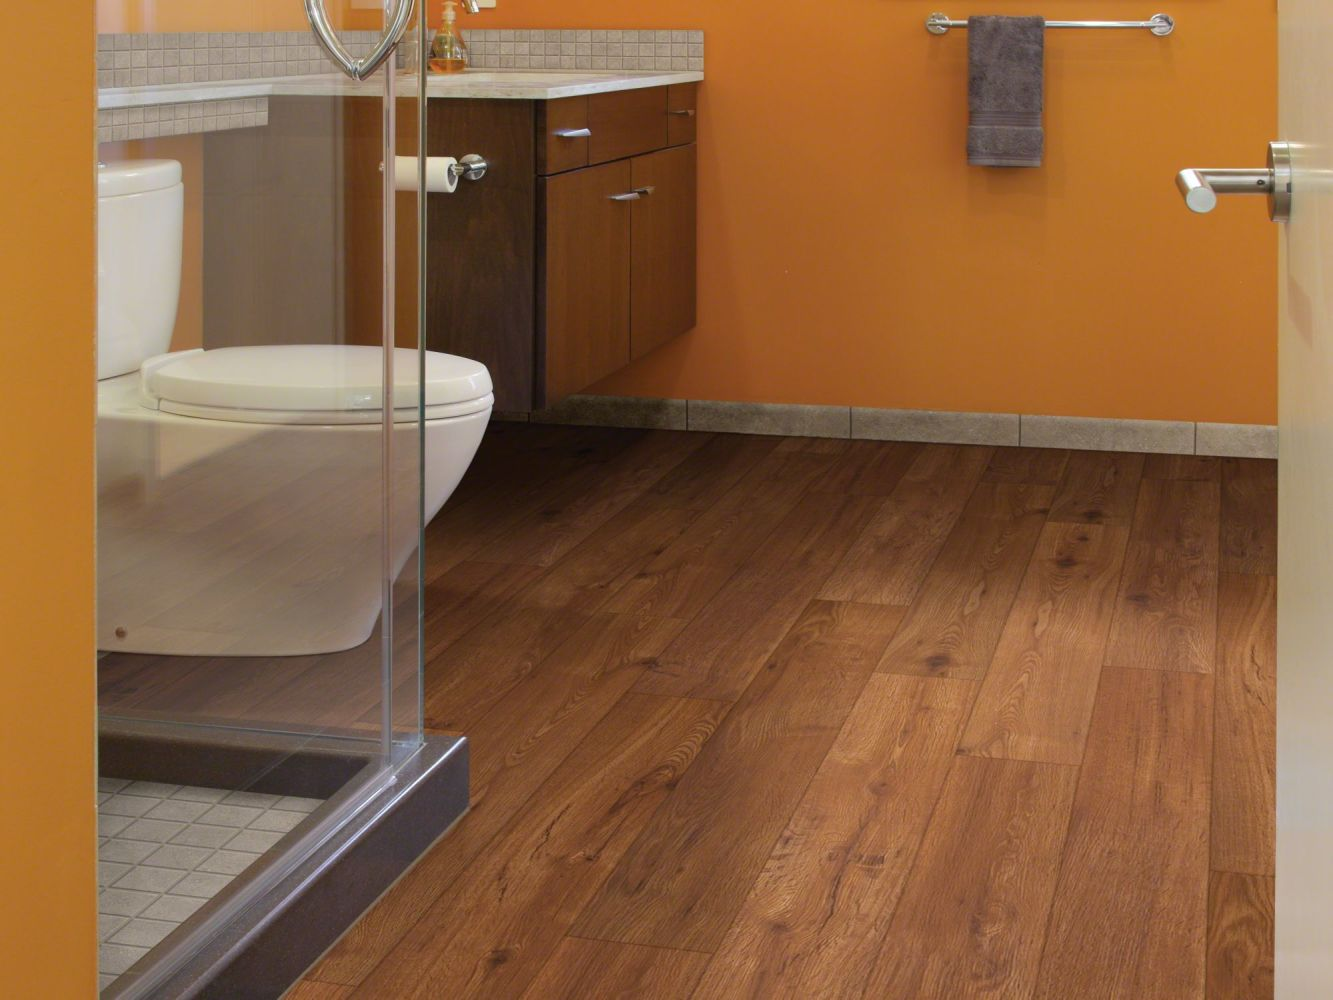 Shaw Floors Resilient Residential Classico Plus Plank Giallo 00643_2426V